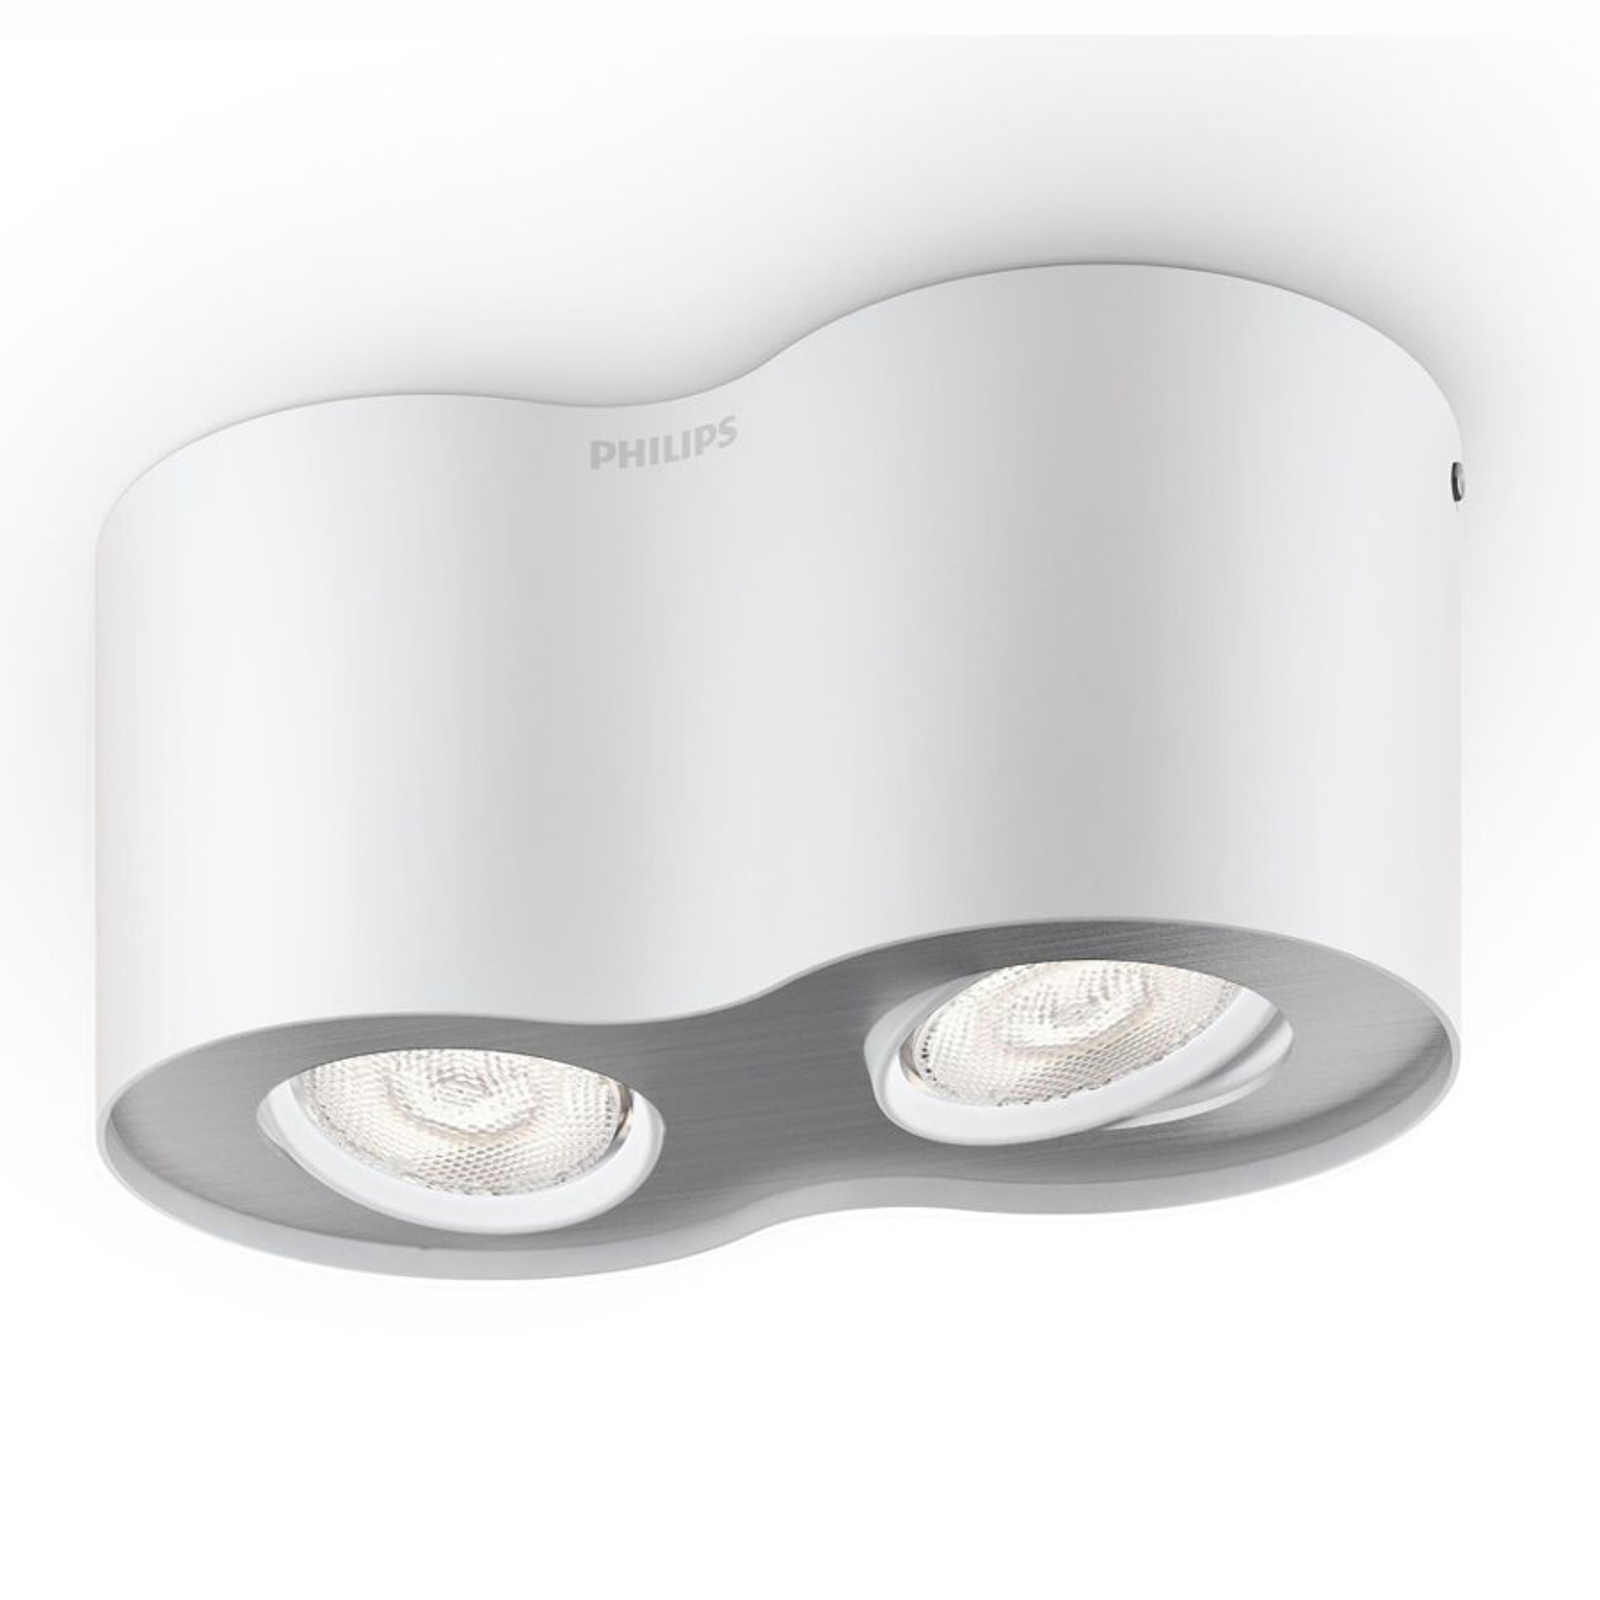 Philips Phase LED-Downlight weiß 2-flammig